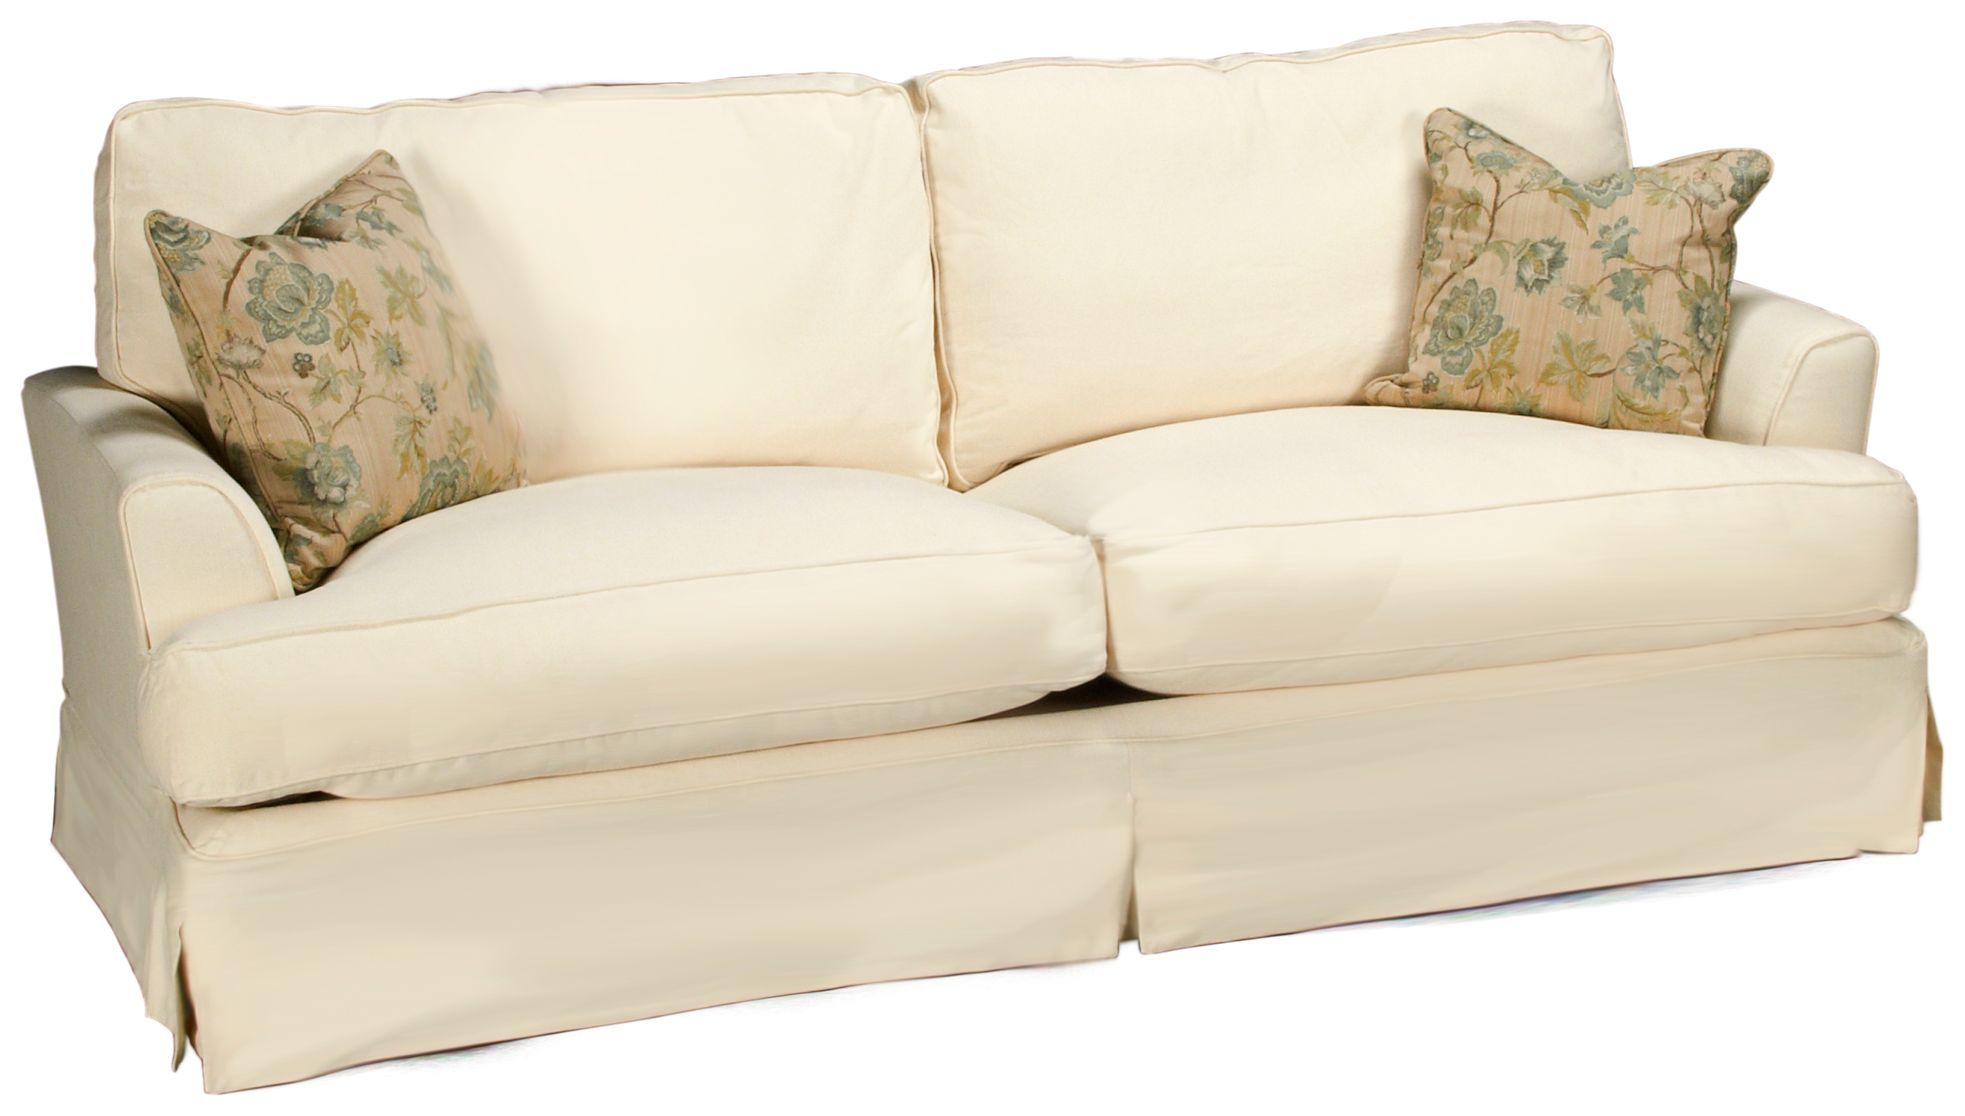 Synergy Montague Sofa with Slipcover Sofas for Sale